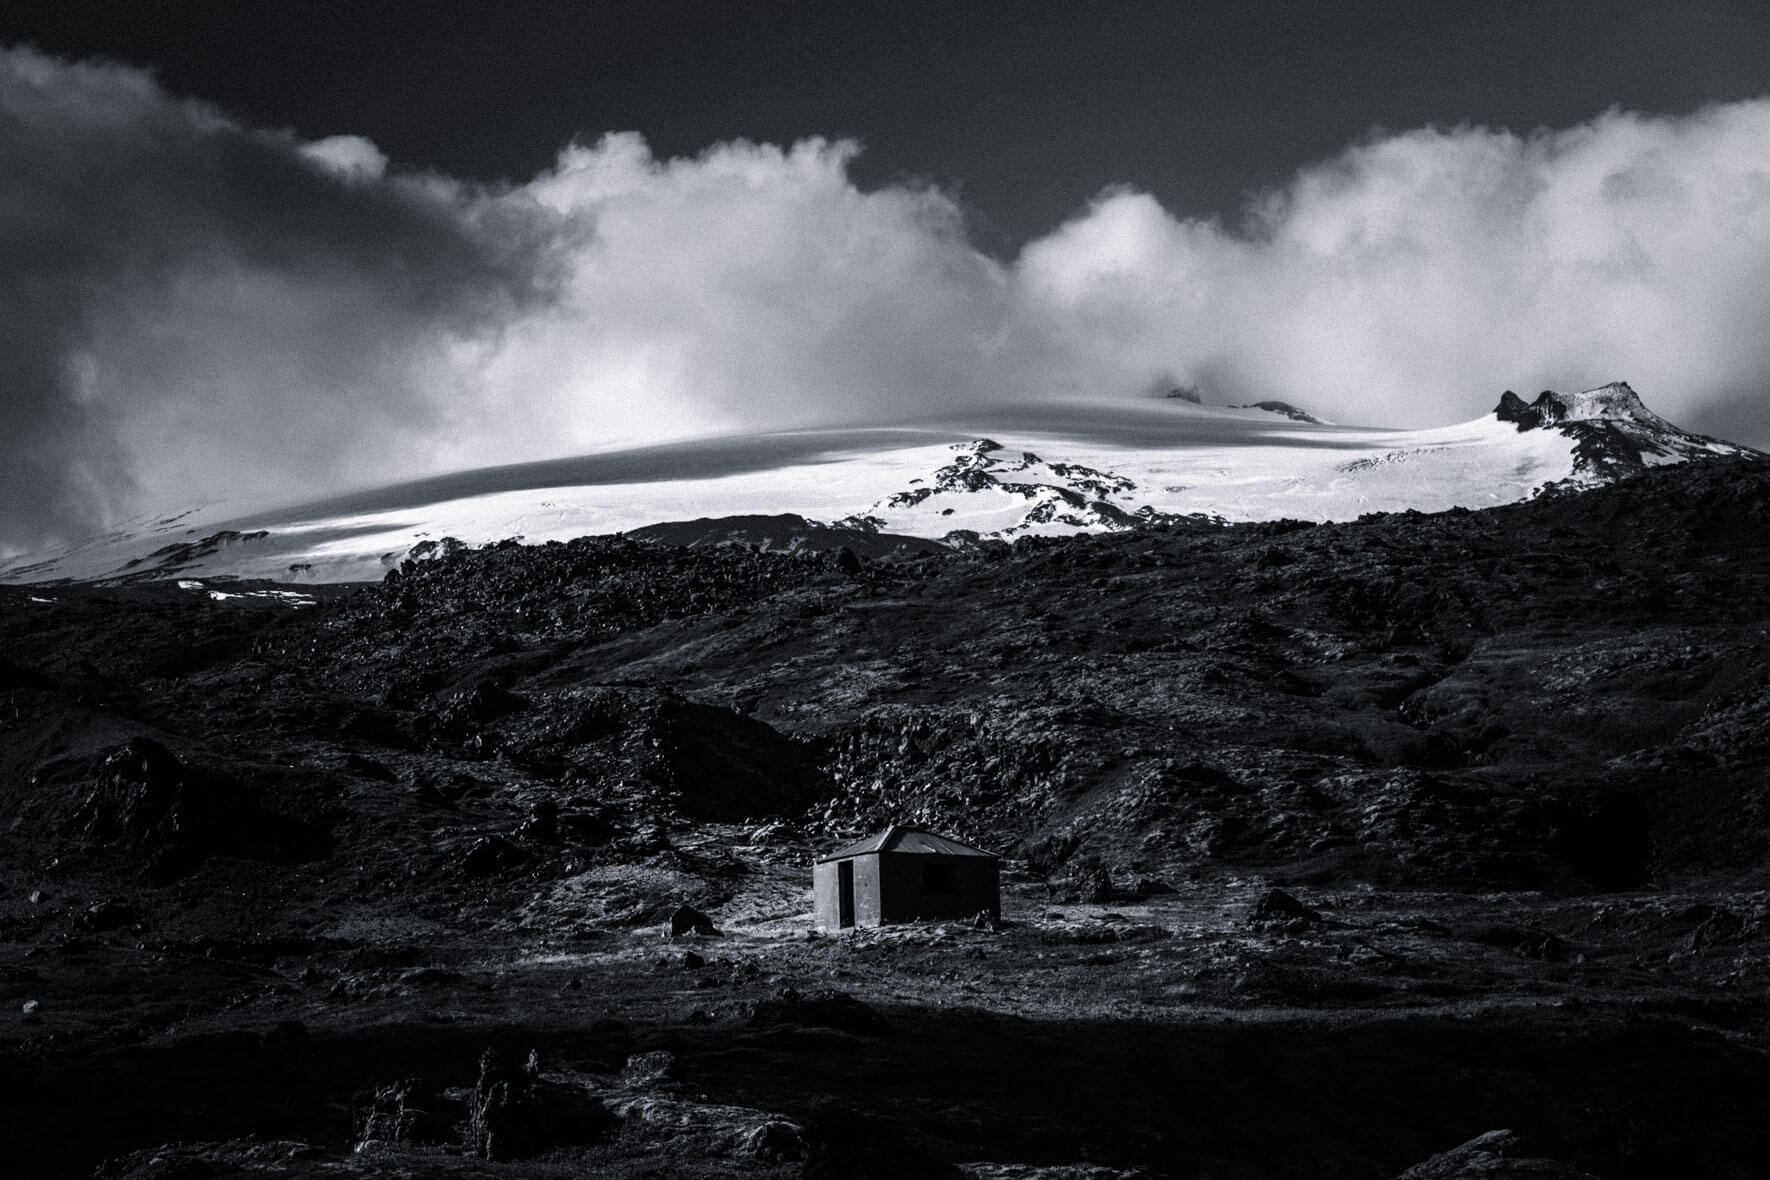 Black and white landscape photography by Jan Erik Waider